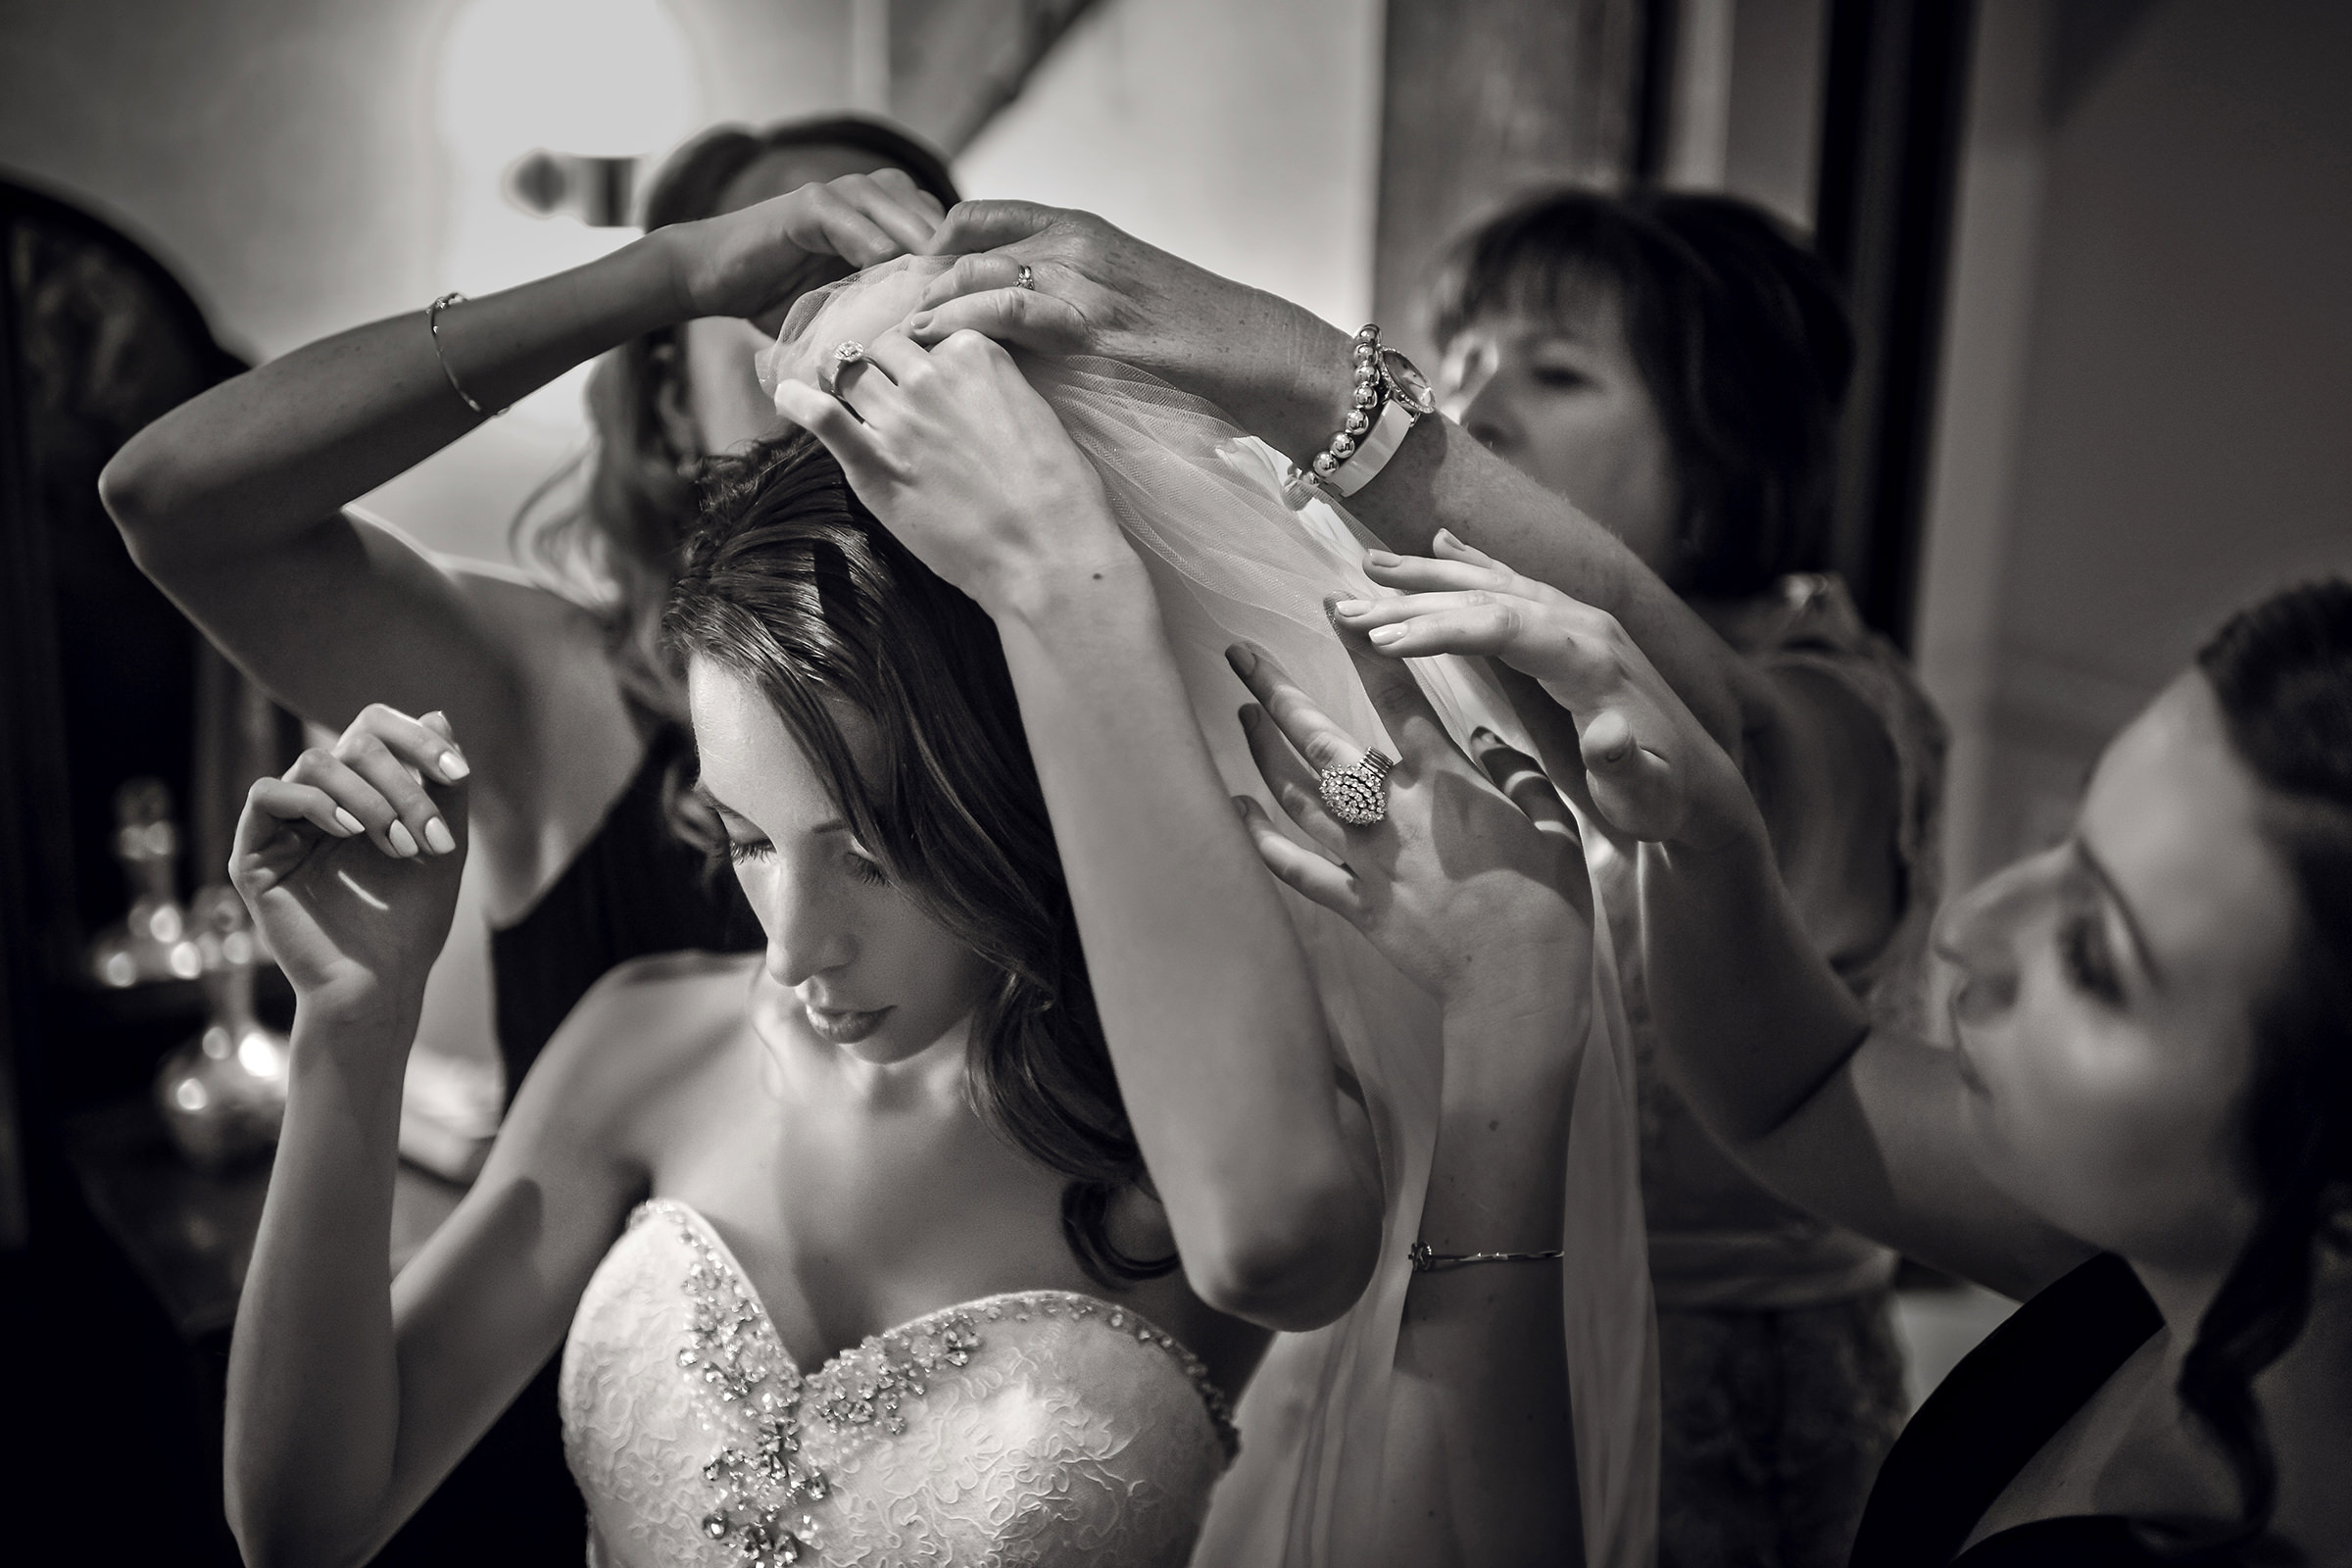 Putting the veil on the bride - photo by David & Sherry Photography